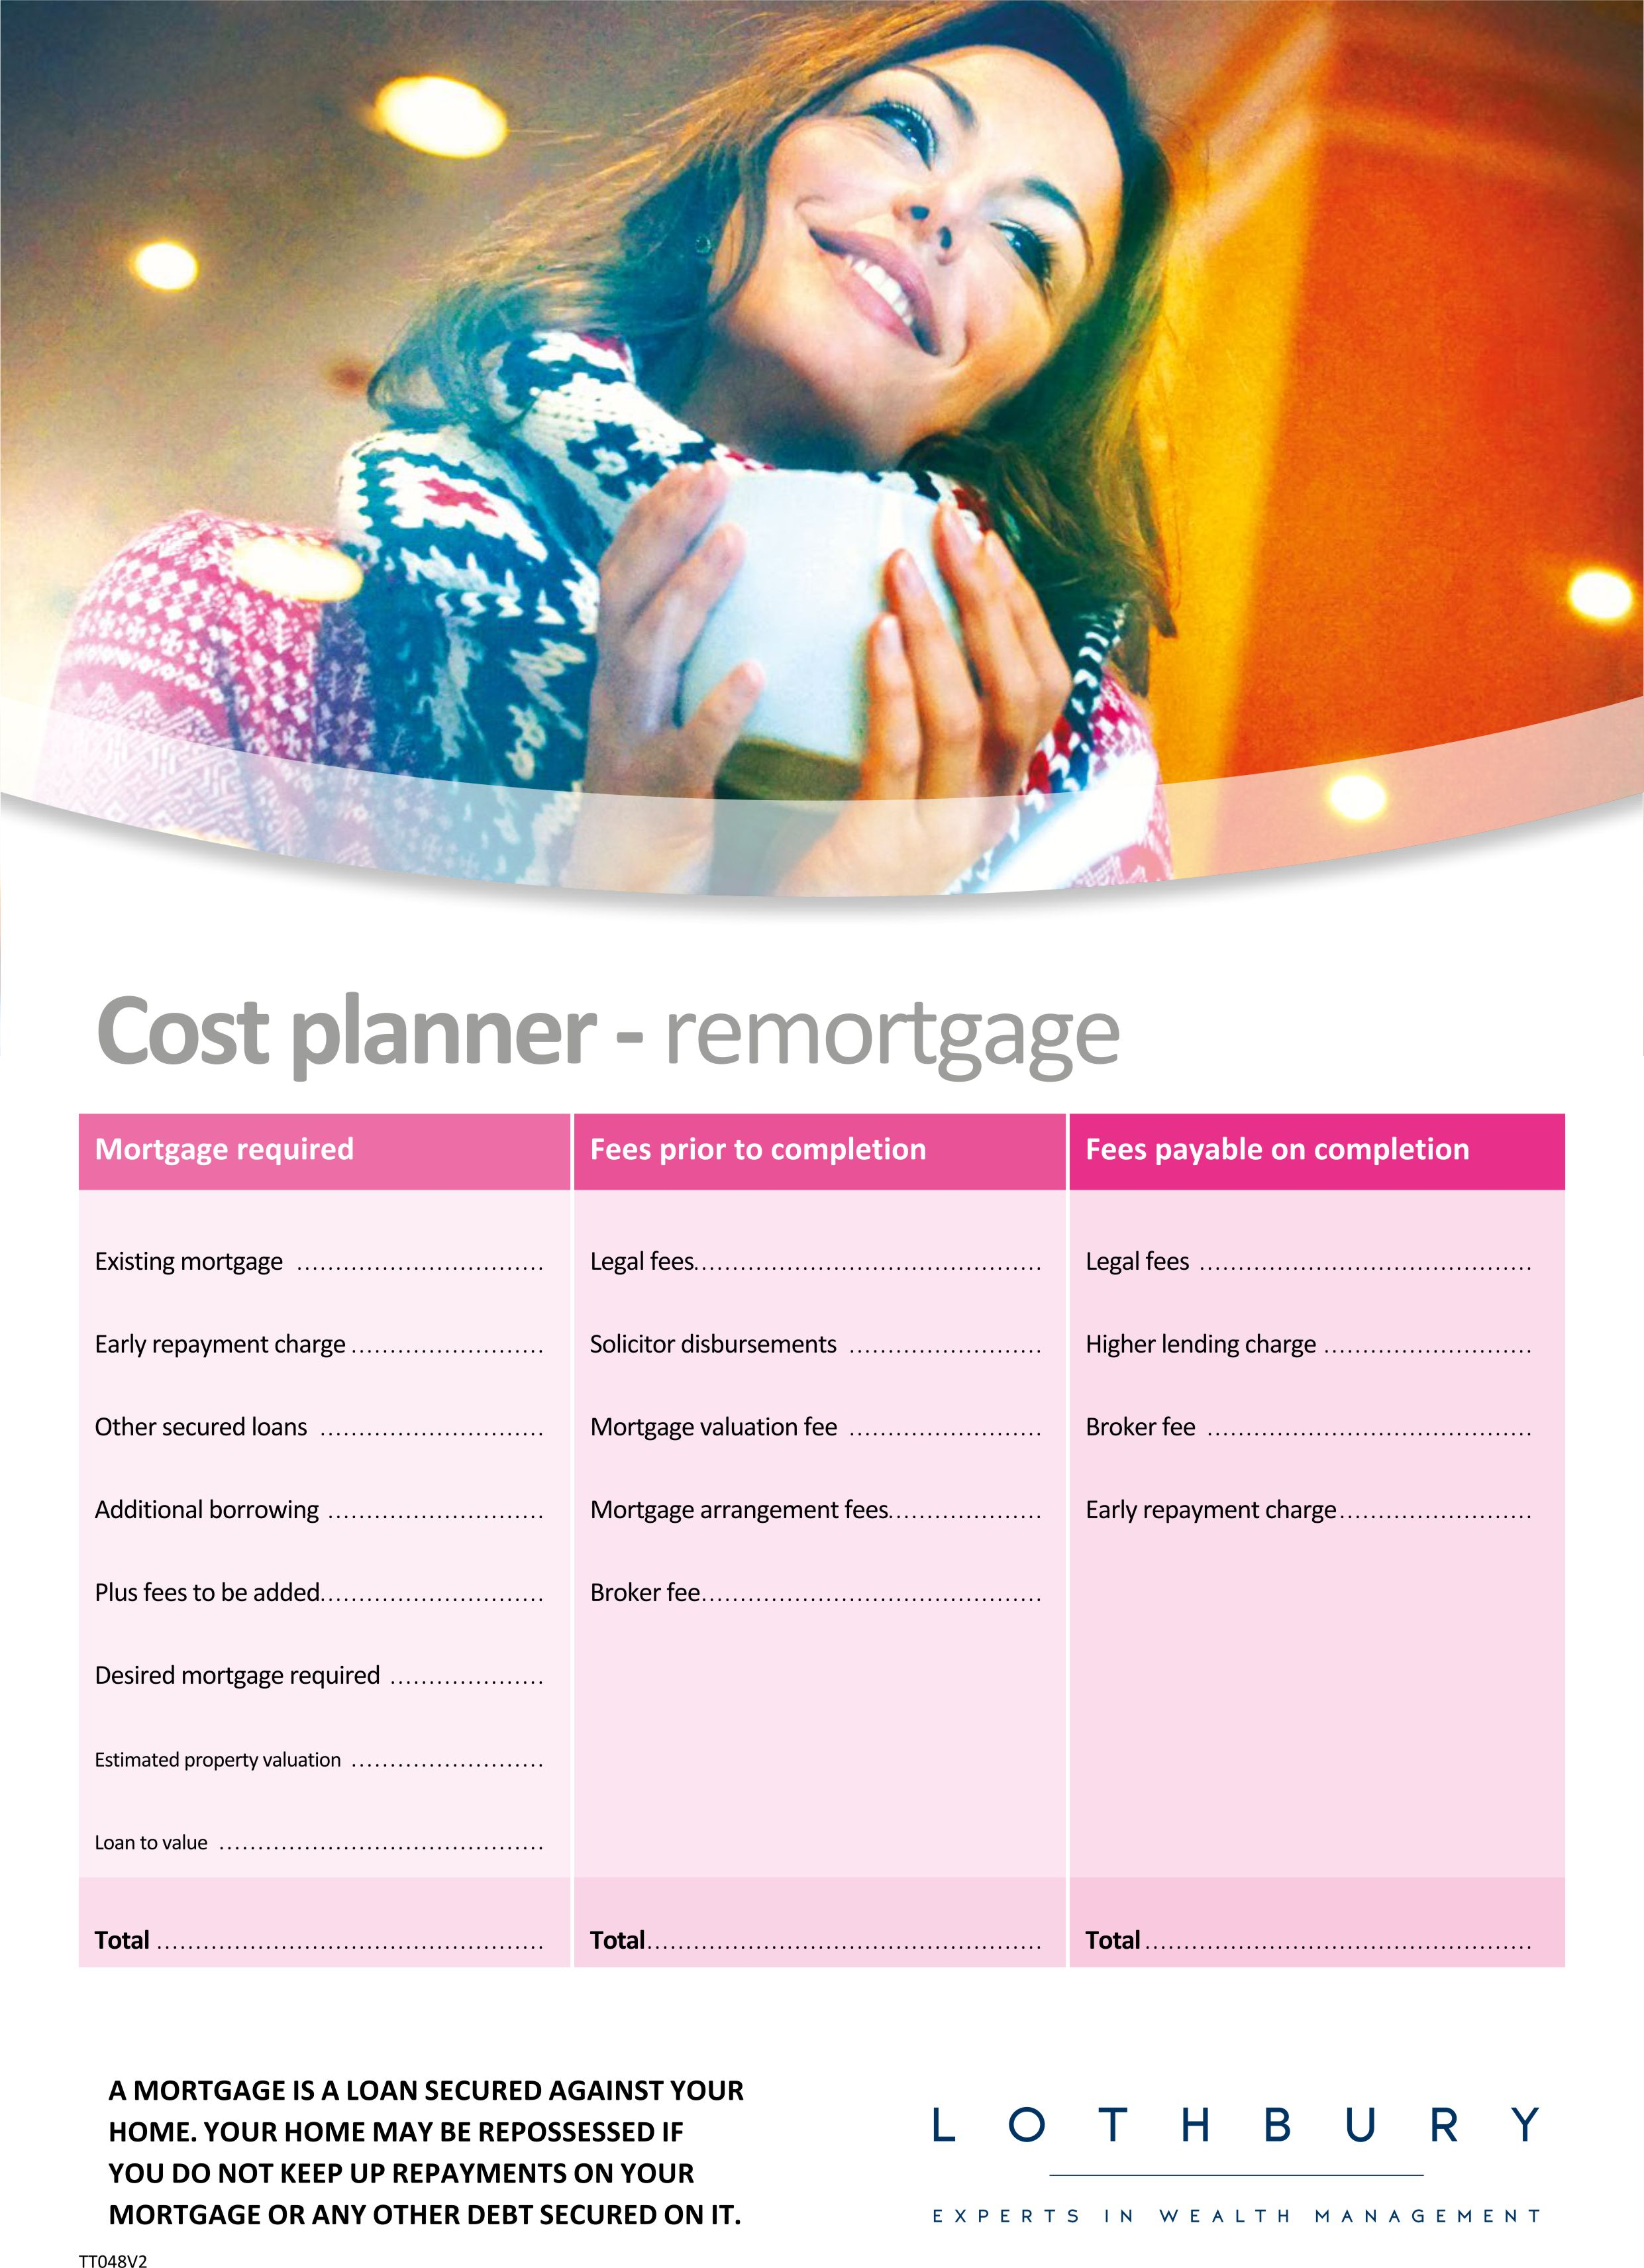 cost planner - remortgage - Use our cost planner to make sure you have budgeted for all of the costs when you come to remortgage